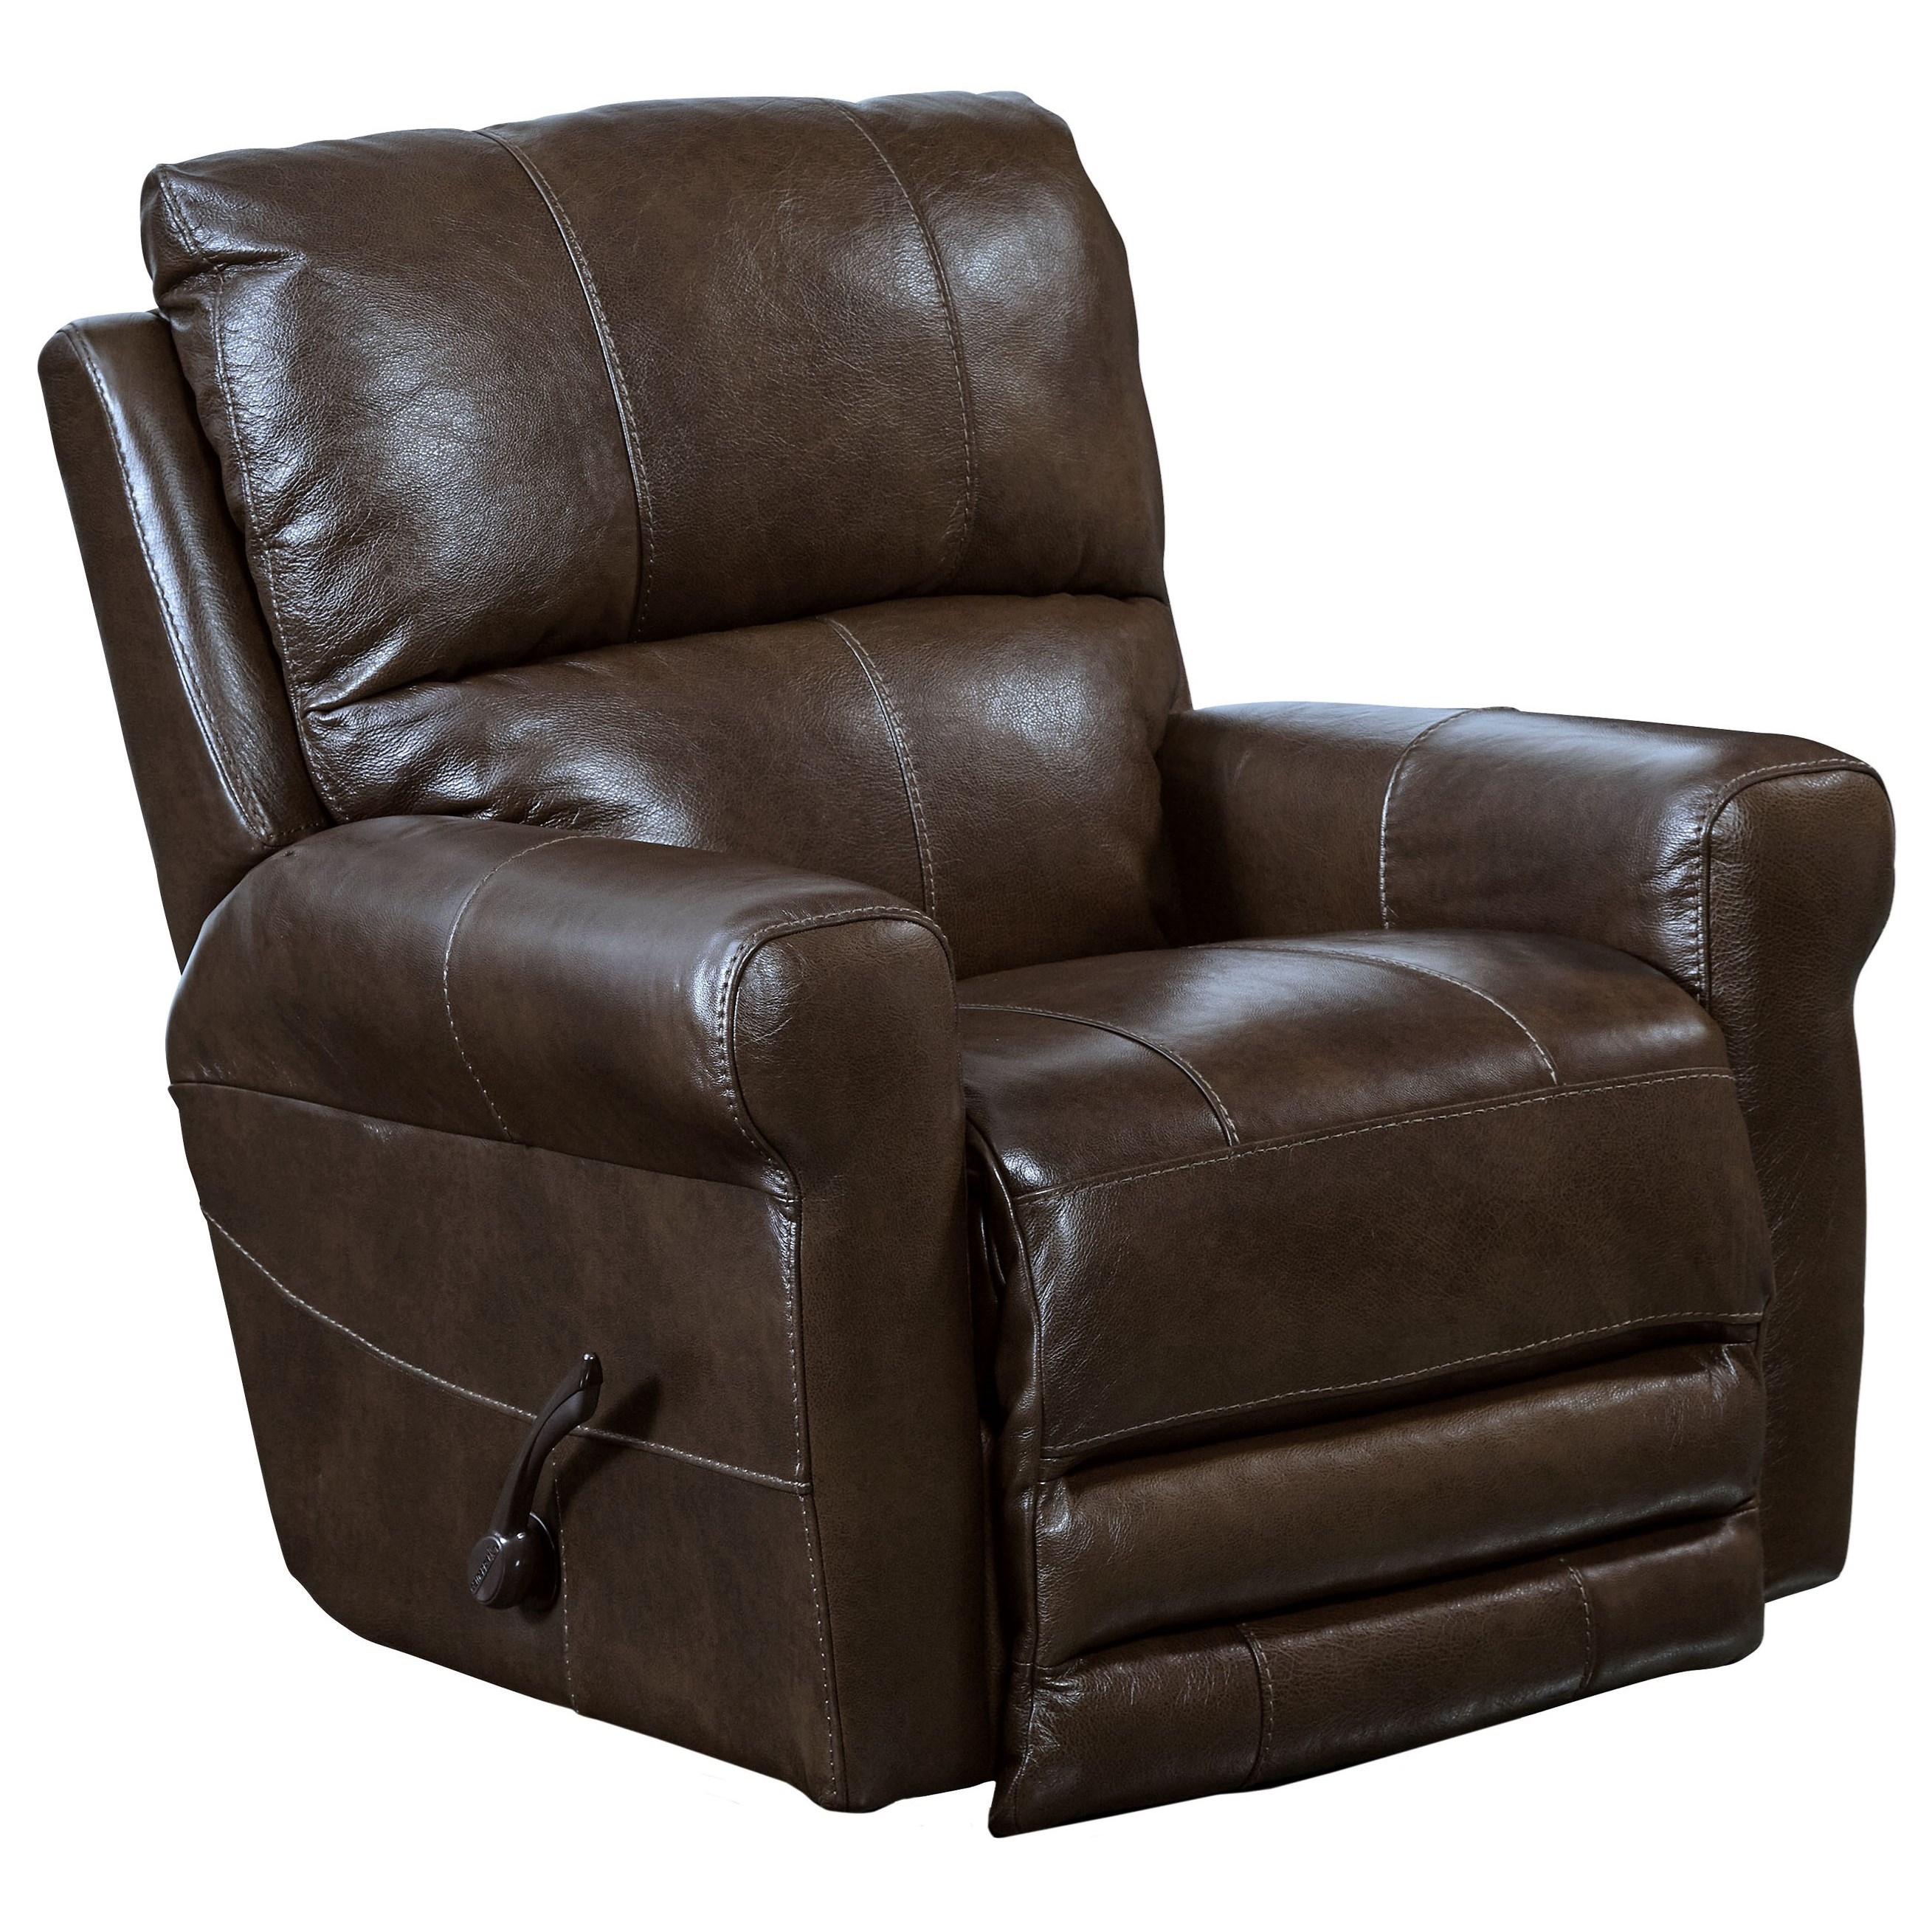 furniture recliners moore s chippendale saddle weir brown recliner products hancock